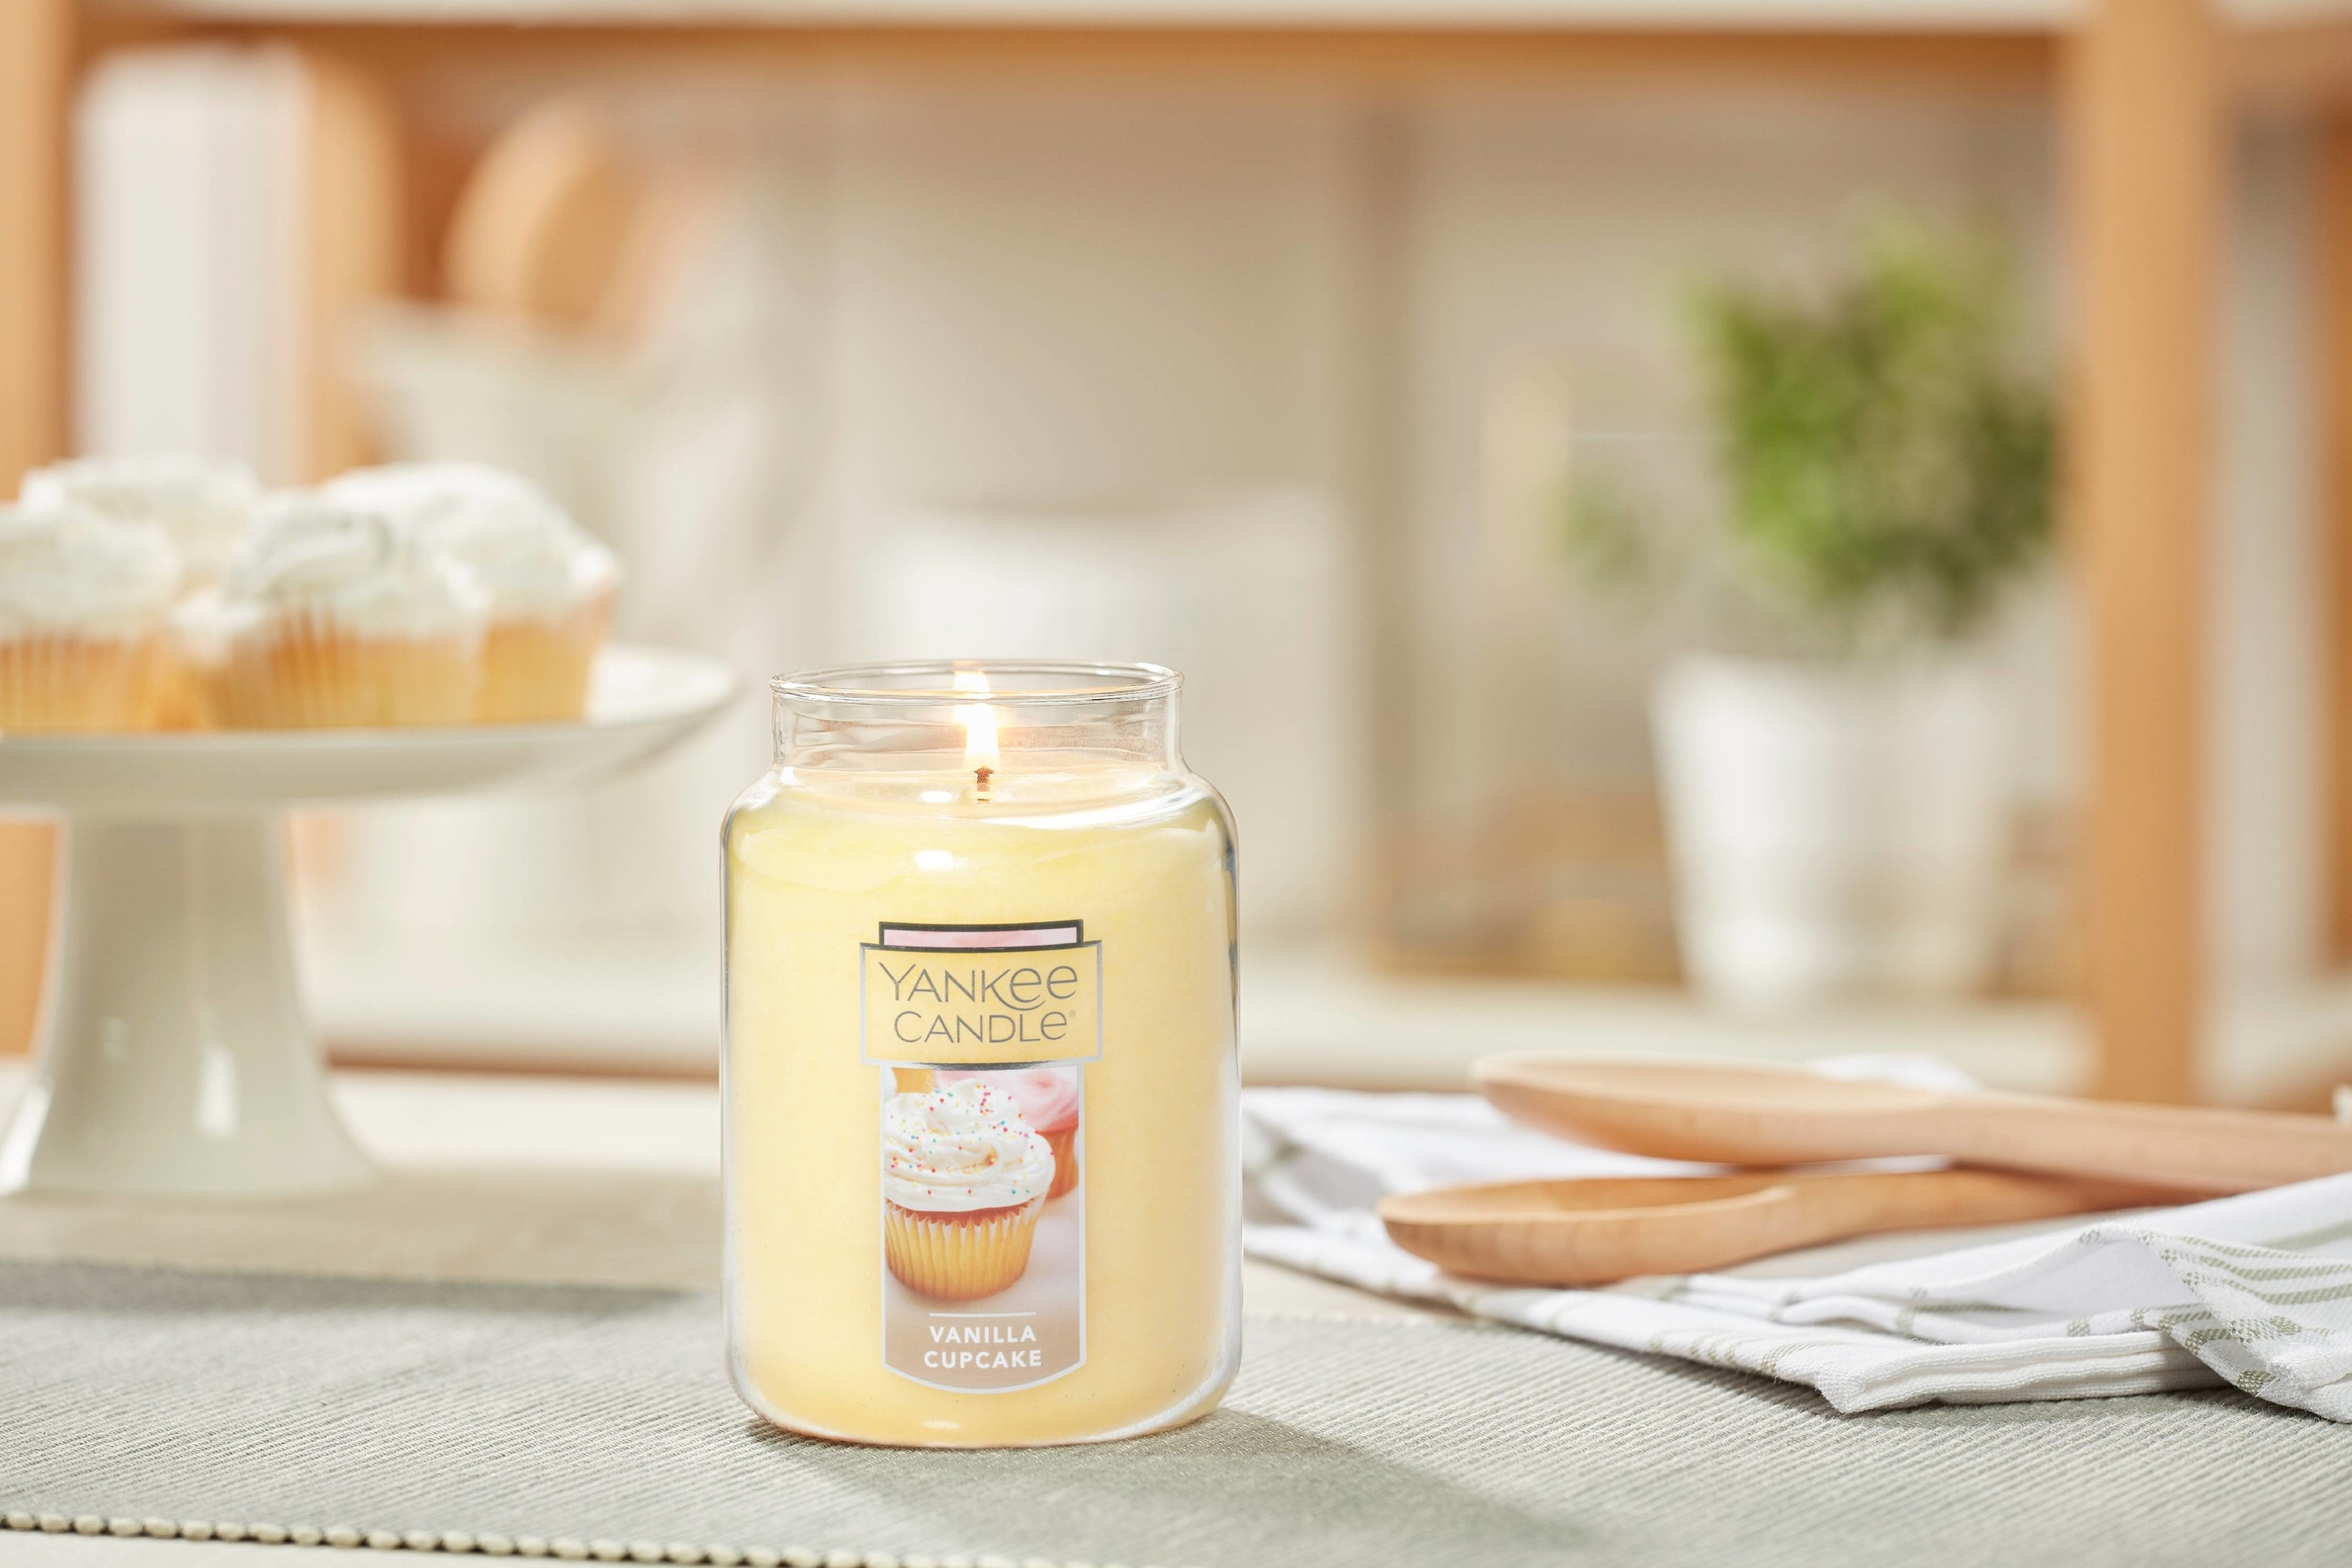 The Yankee Candle on a kitchen table beside vanilla cupcakes